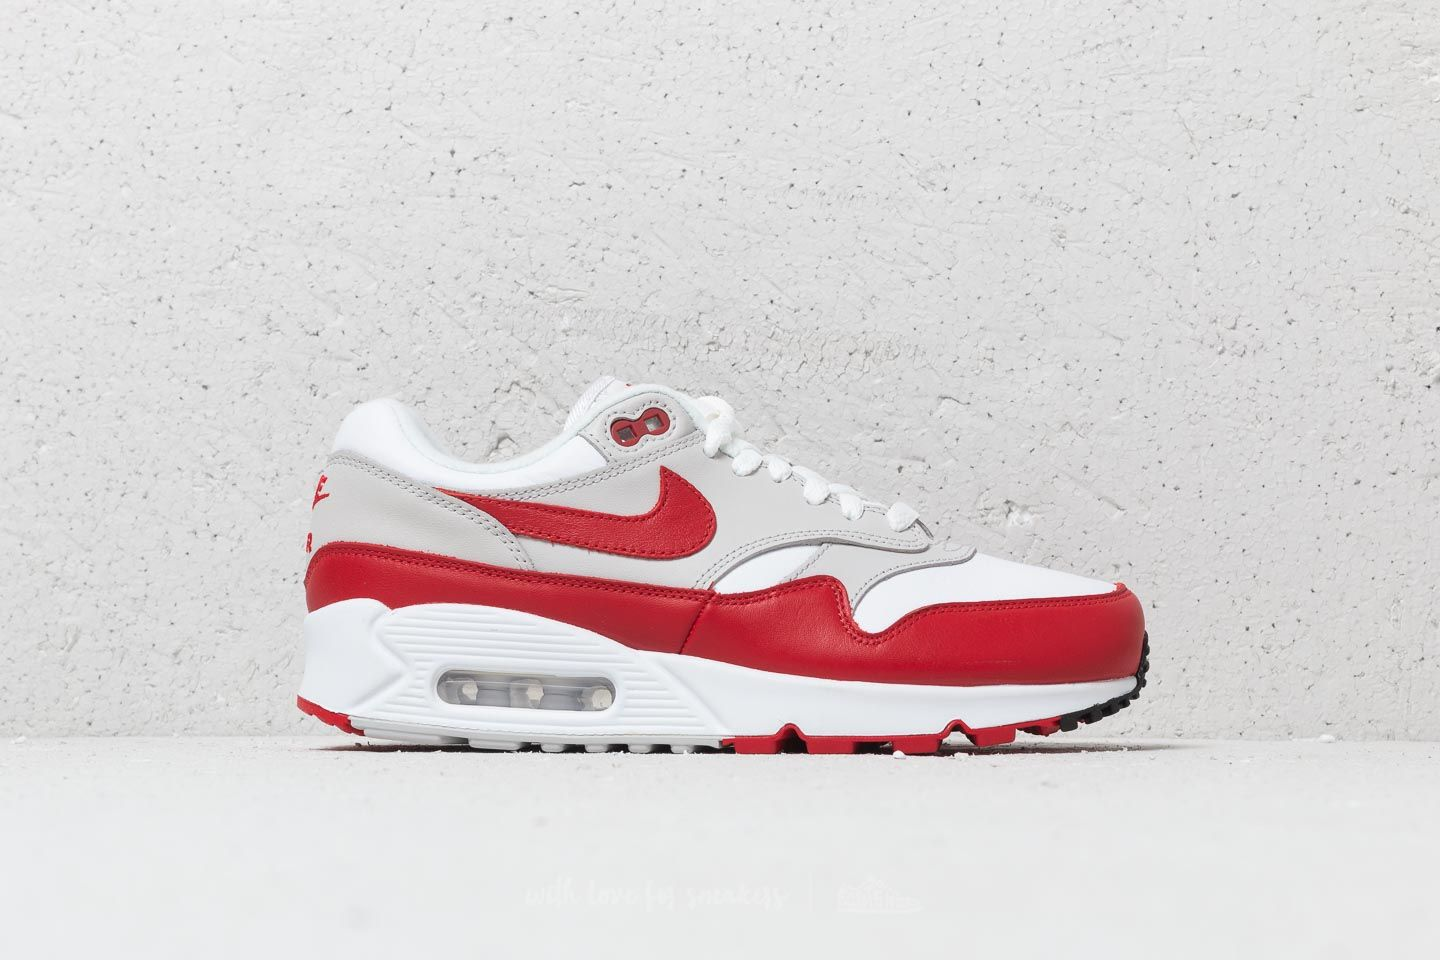 san francisco 93771 c70b9 Nike Air Max 901 W White University Red at a great price 147